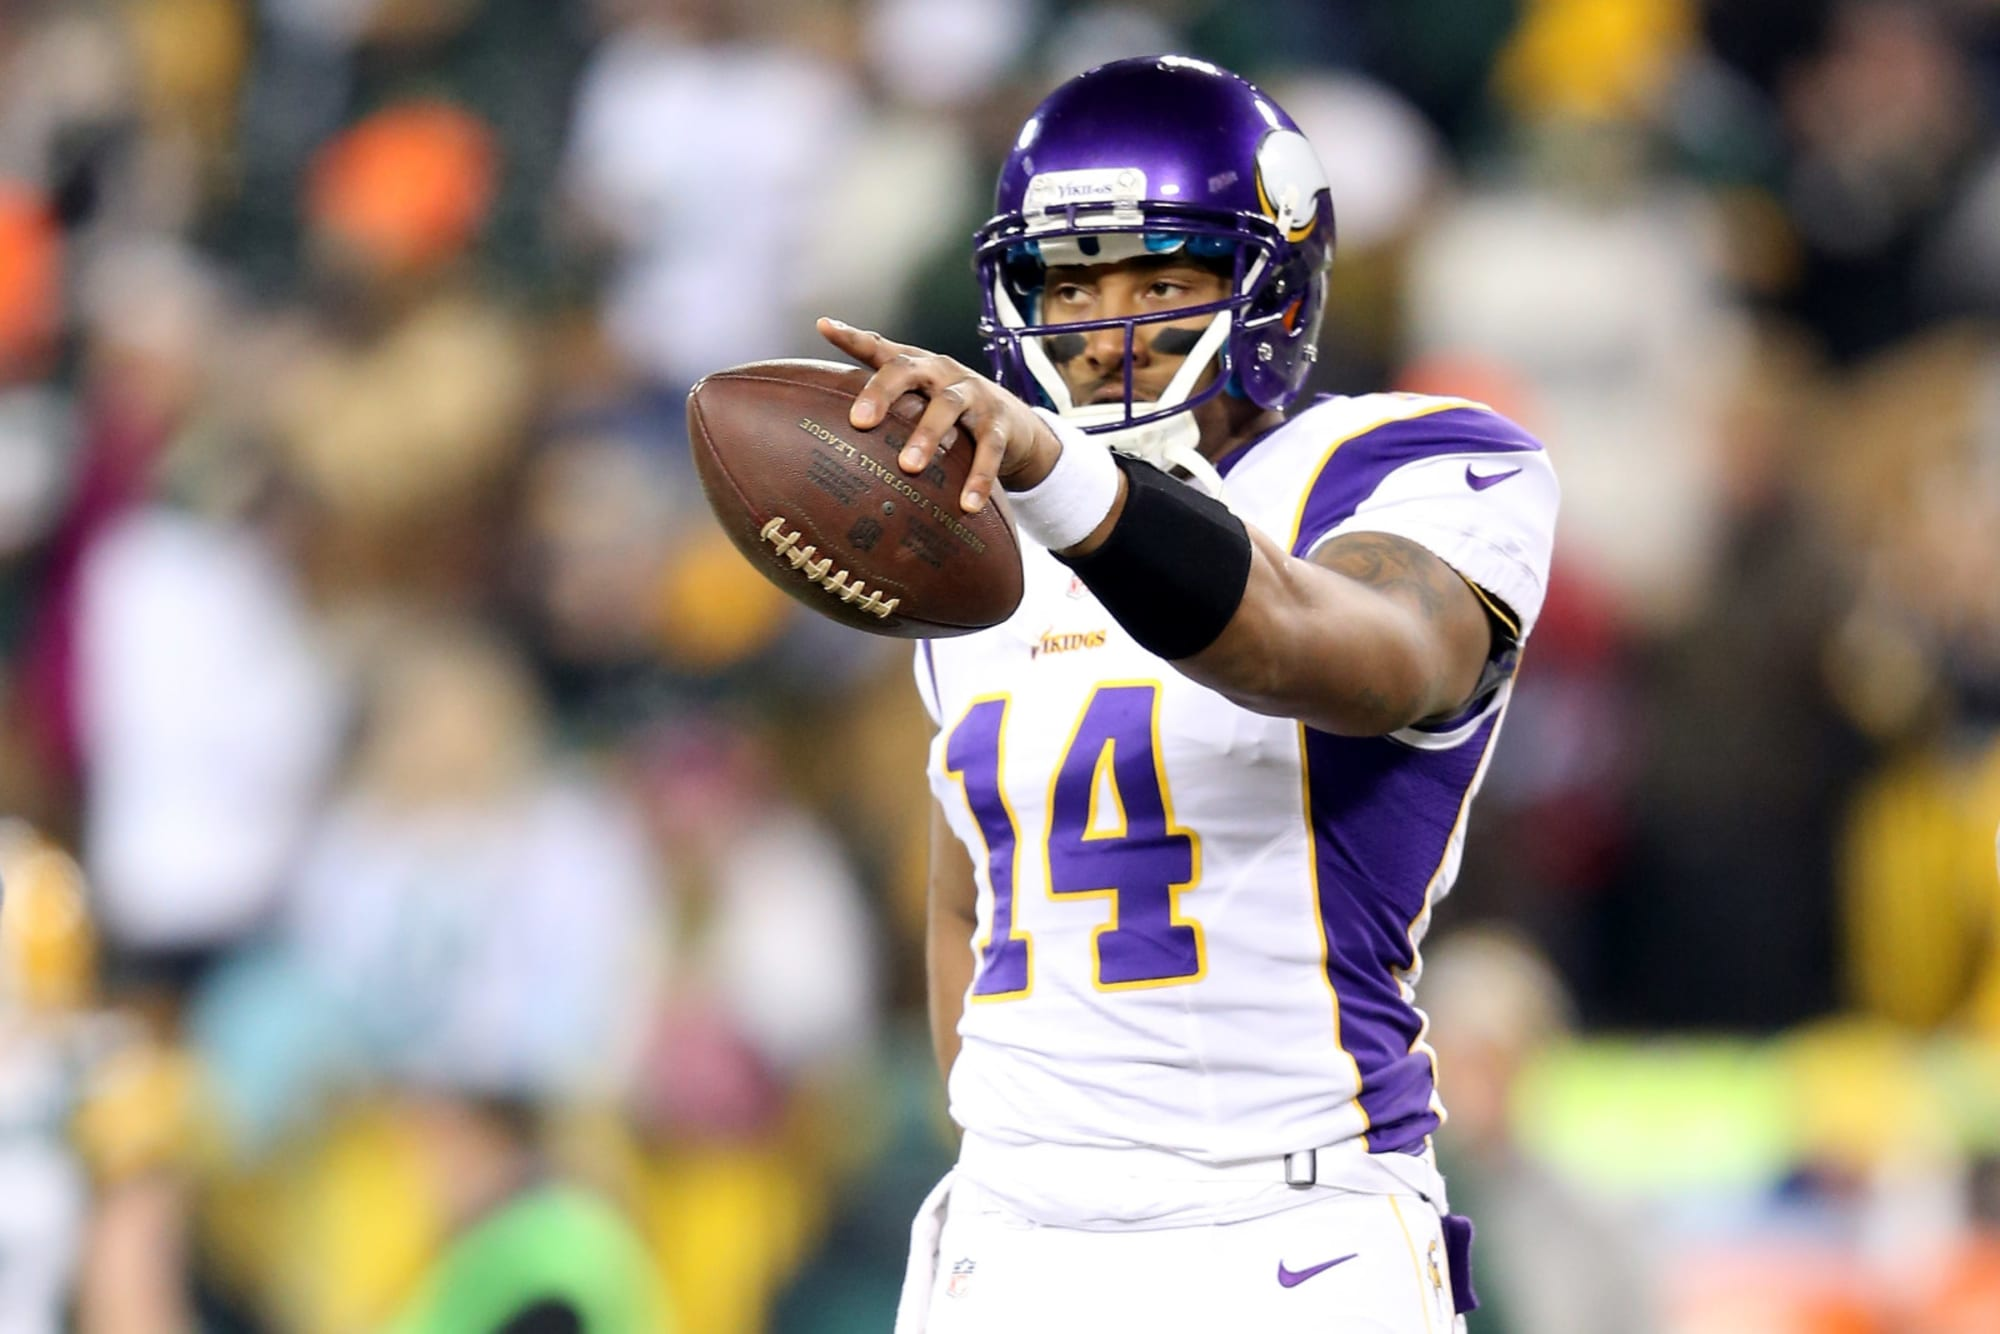 NFL career might have just ended for a former Vikings quarterback